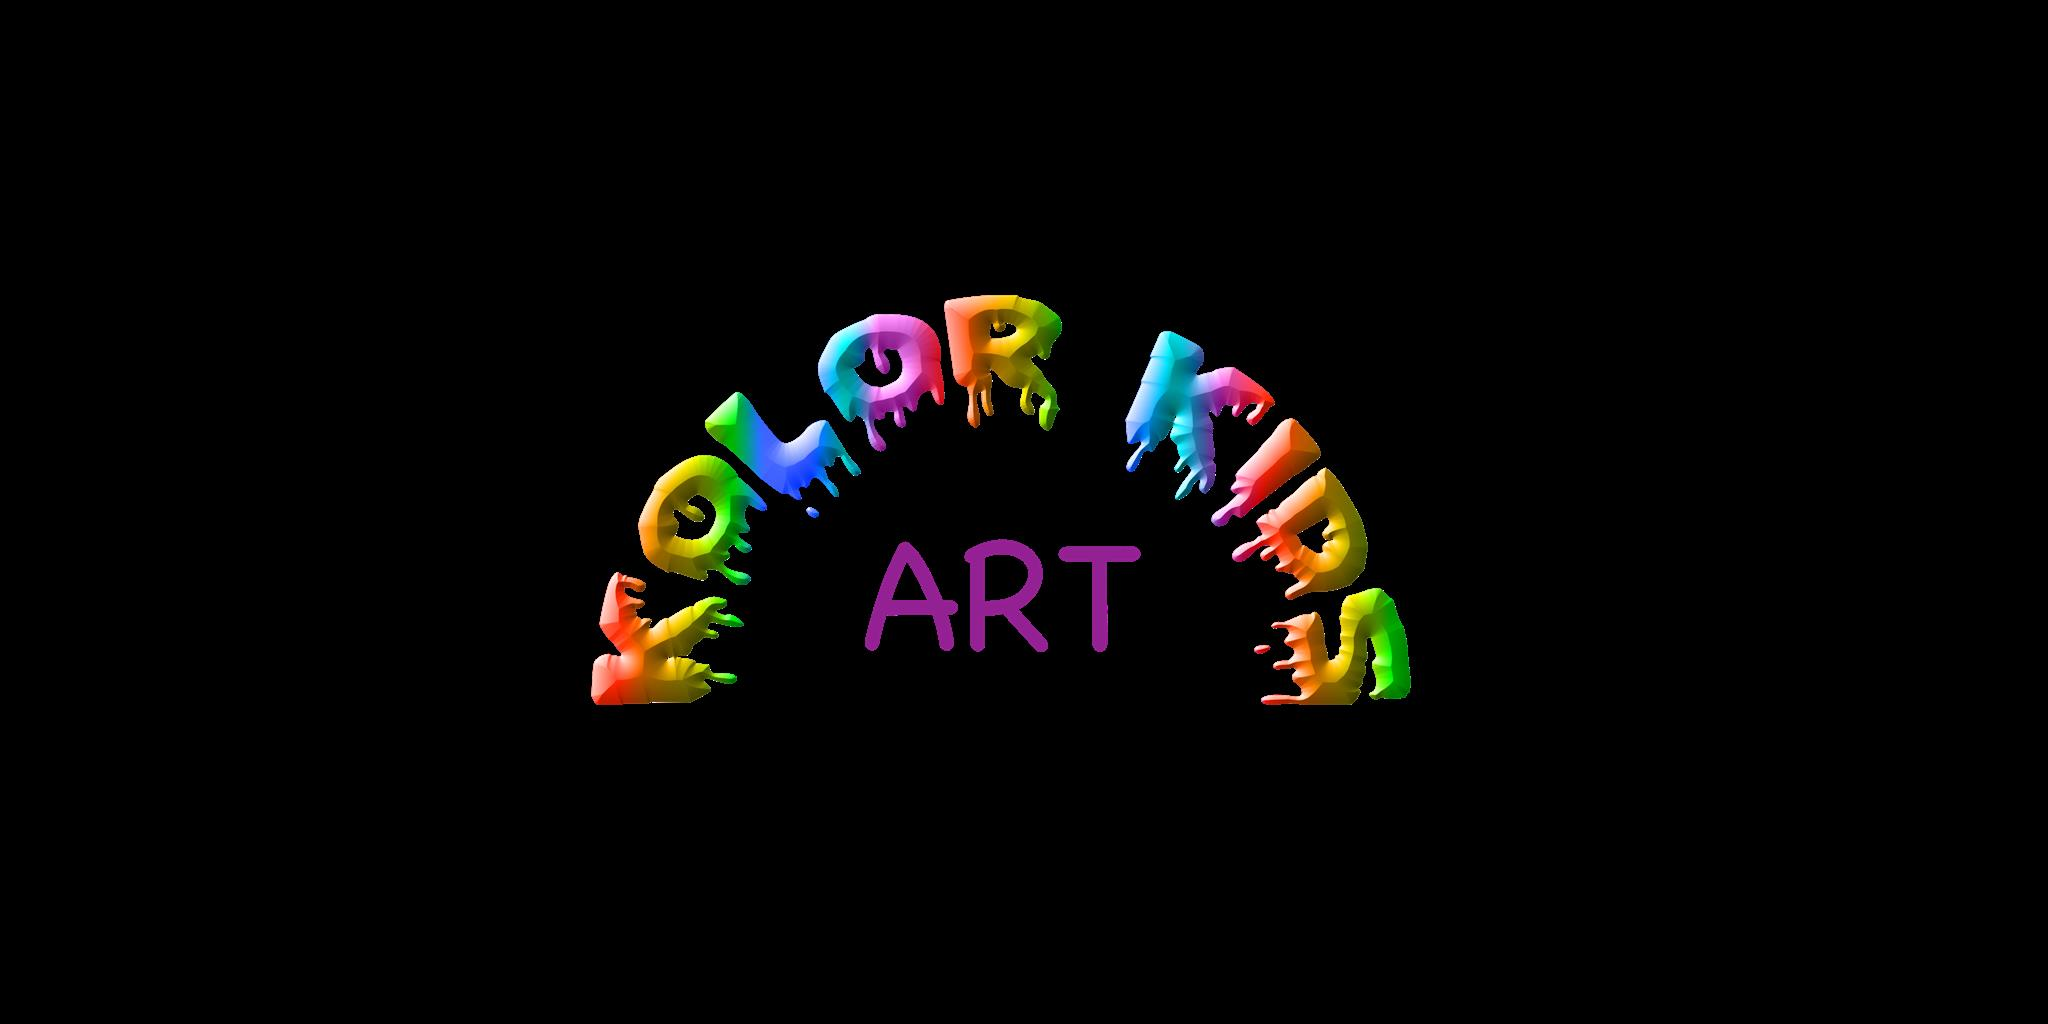 STUDENT ARTISTS REQUIRED FOR WEEKEND WORK 3 HOURS (SATURDAUS OR SUNDAYS)) TRAINING PROVIDED